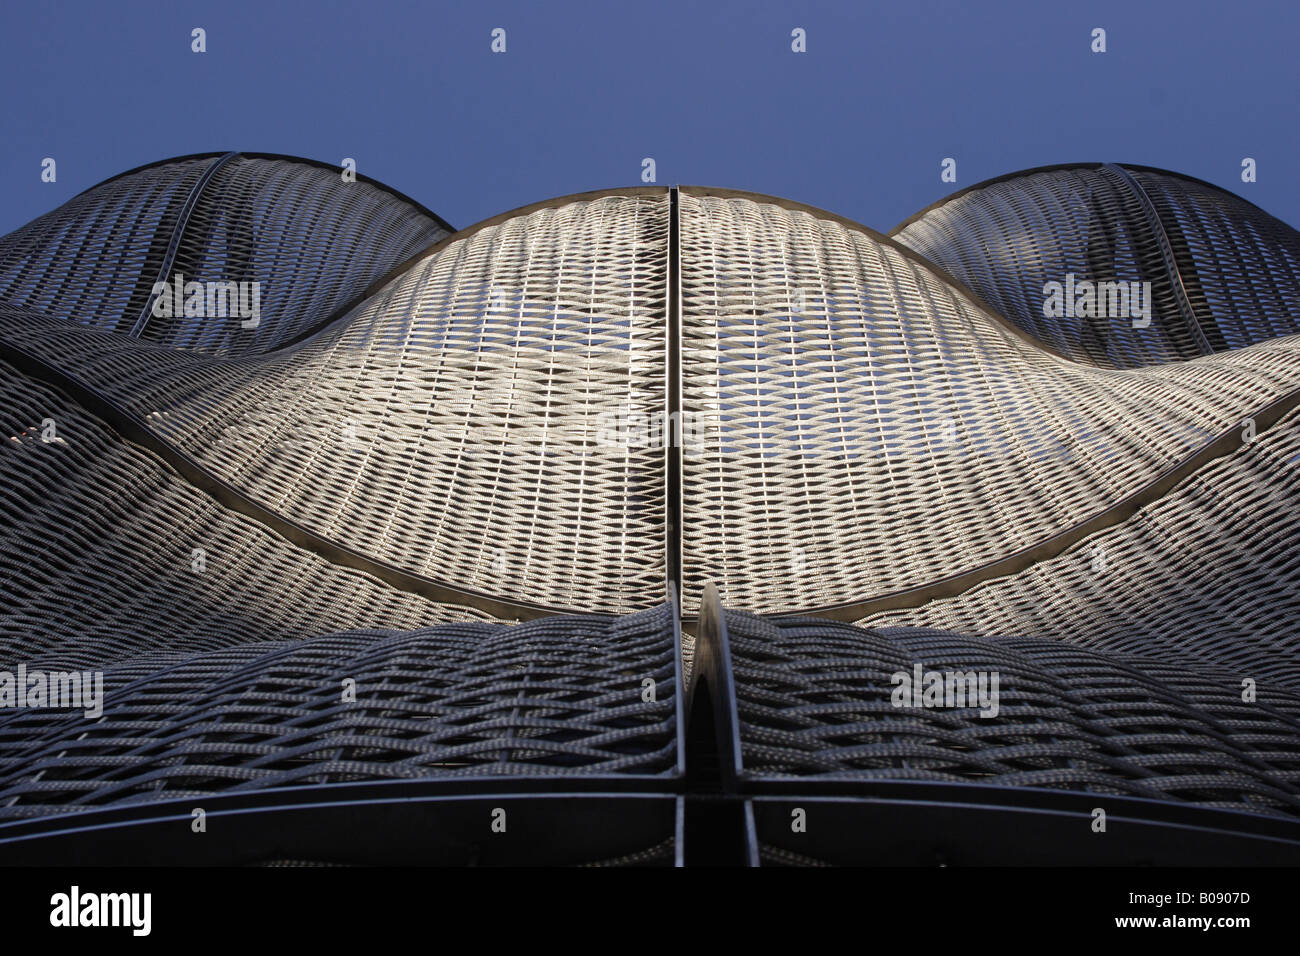 Waves Of An Architectural Cladding Of A Steel Weave At Dusk Stock - Architectural cladding